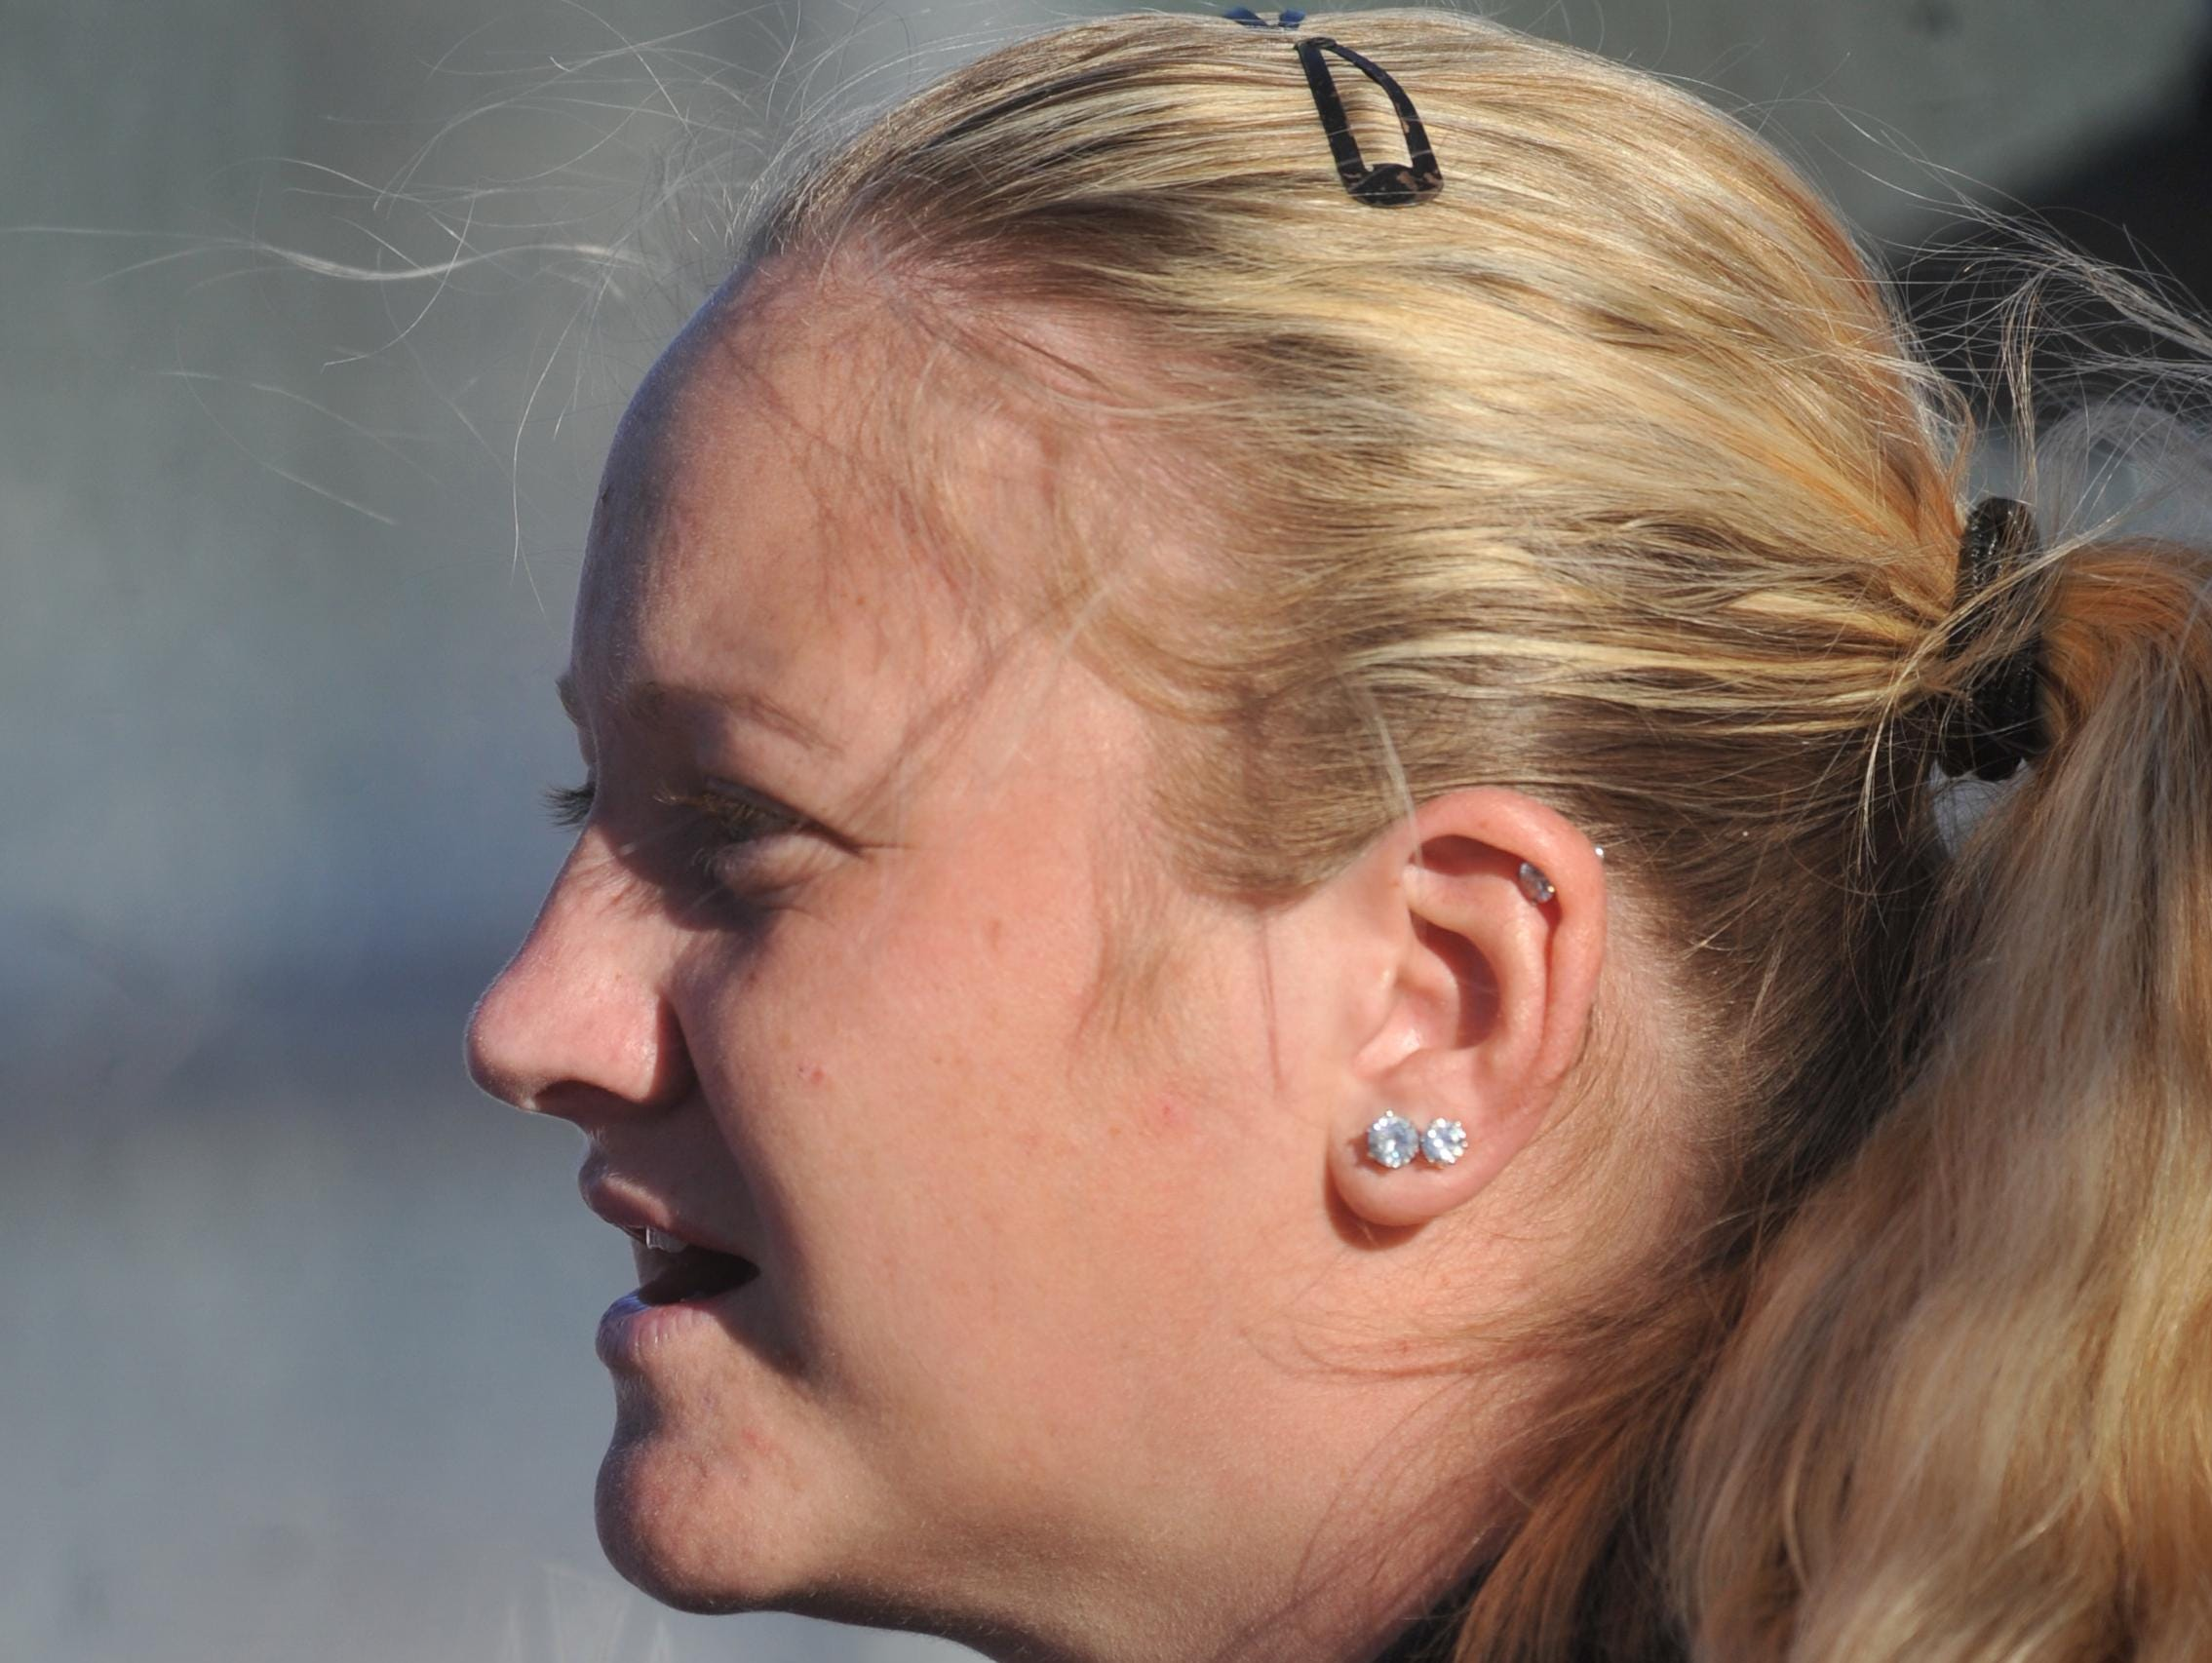 Courtney Ecker, a Centerville graduate and former Bulldog assistant coach, is in her first season leading Hagerstown's tennis team. She'll coach for the first time against her father, Randy, on Thursday.